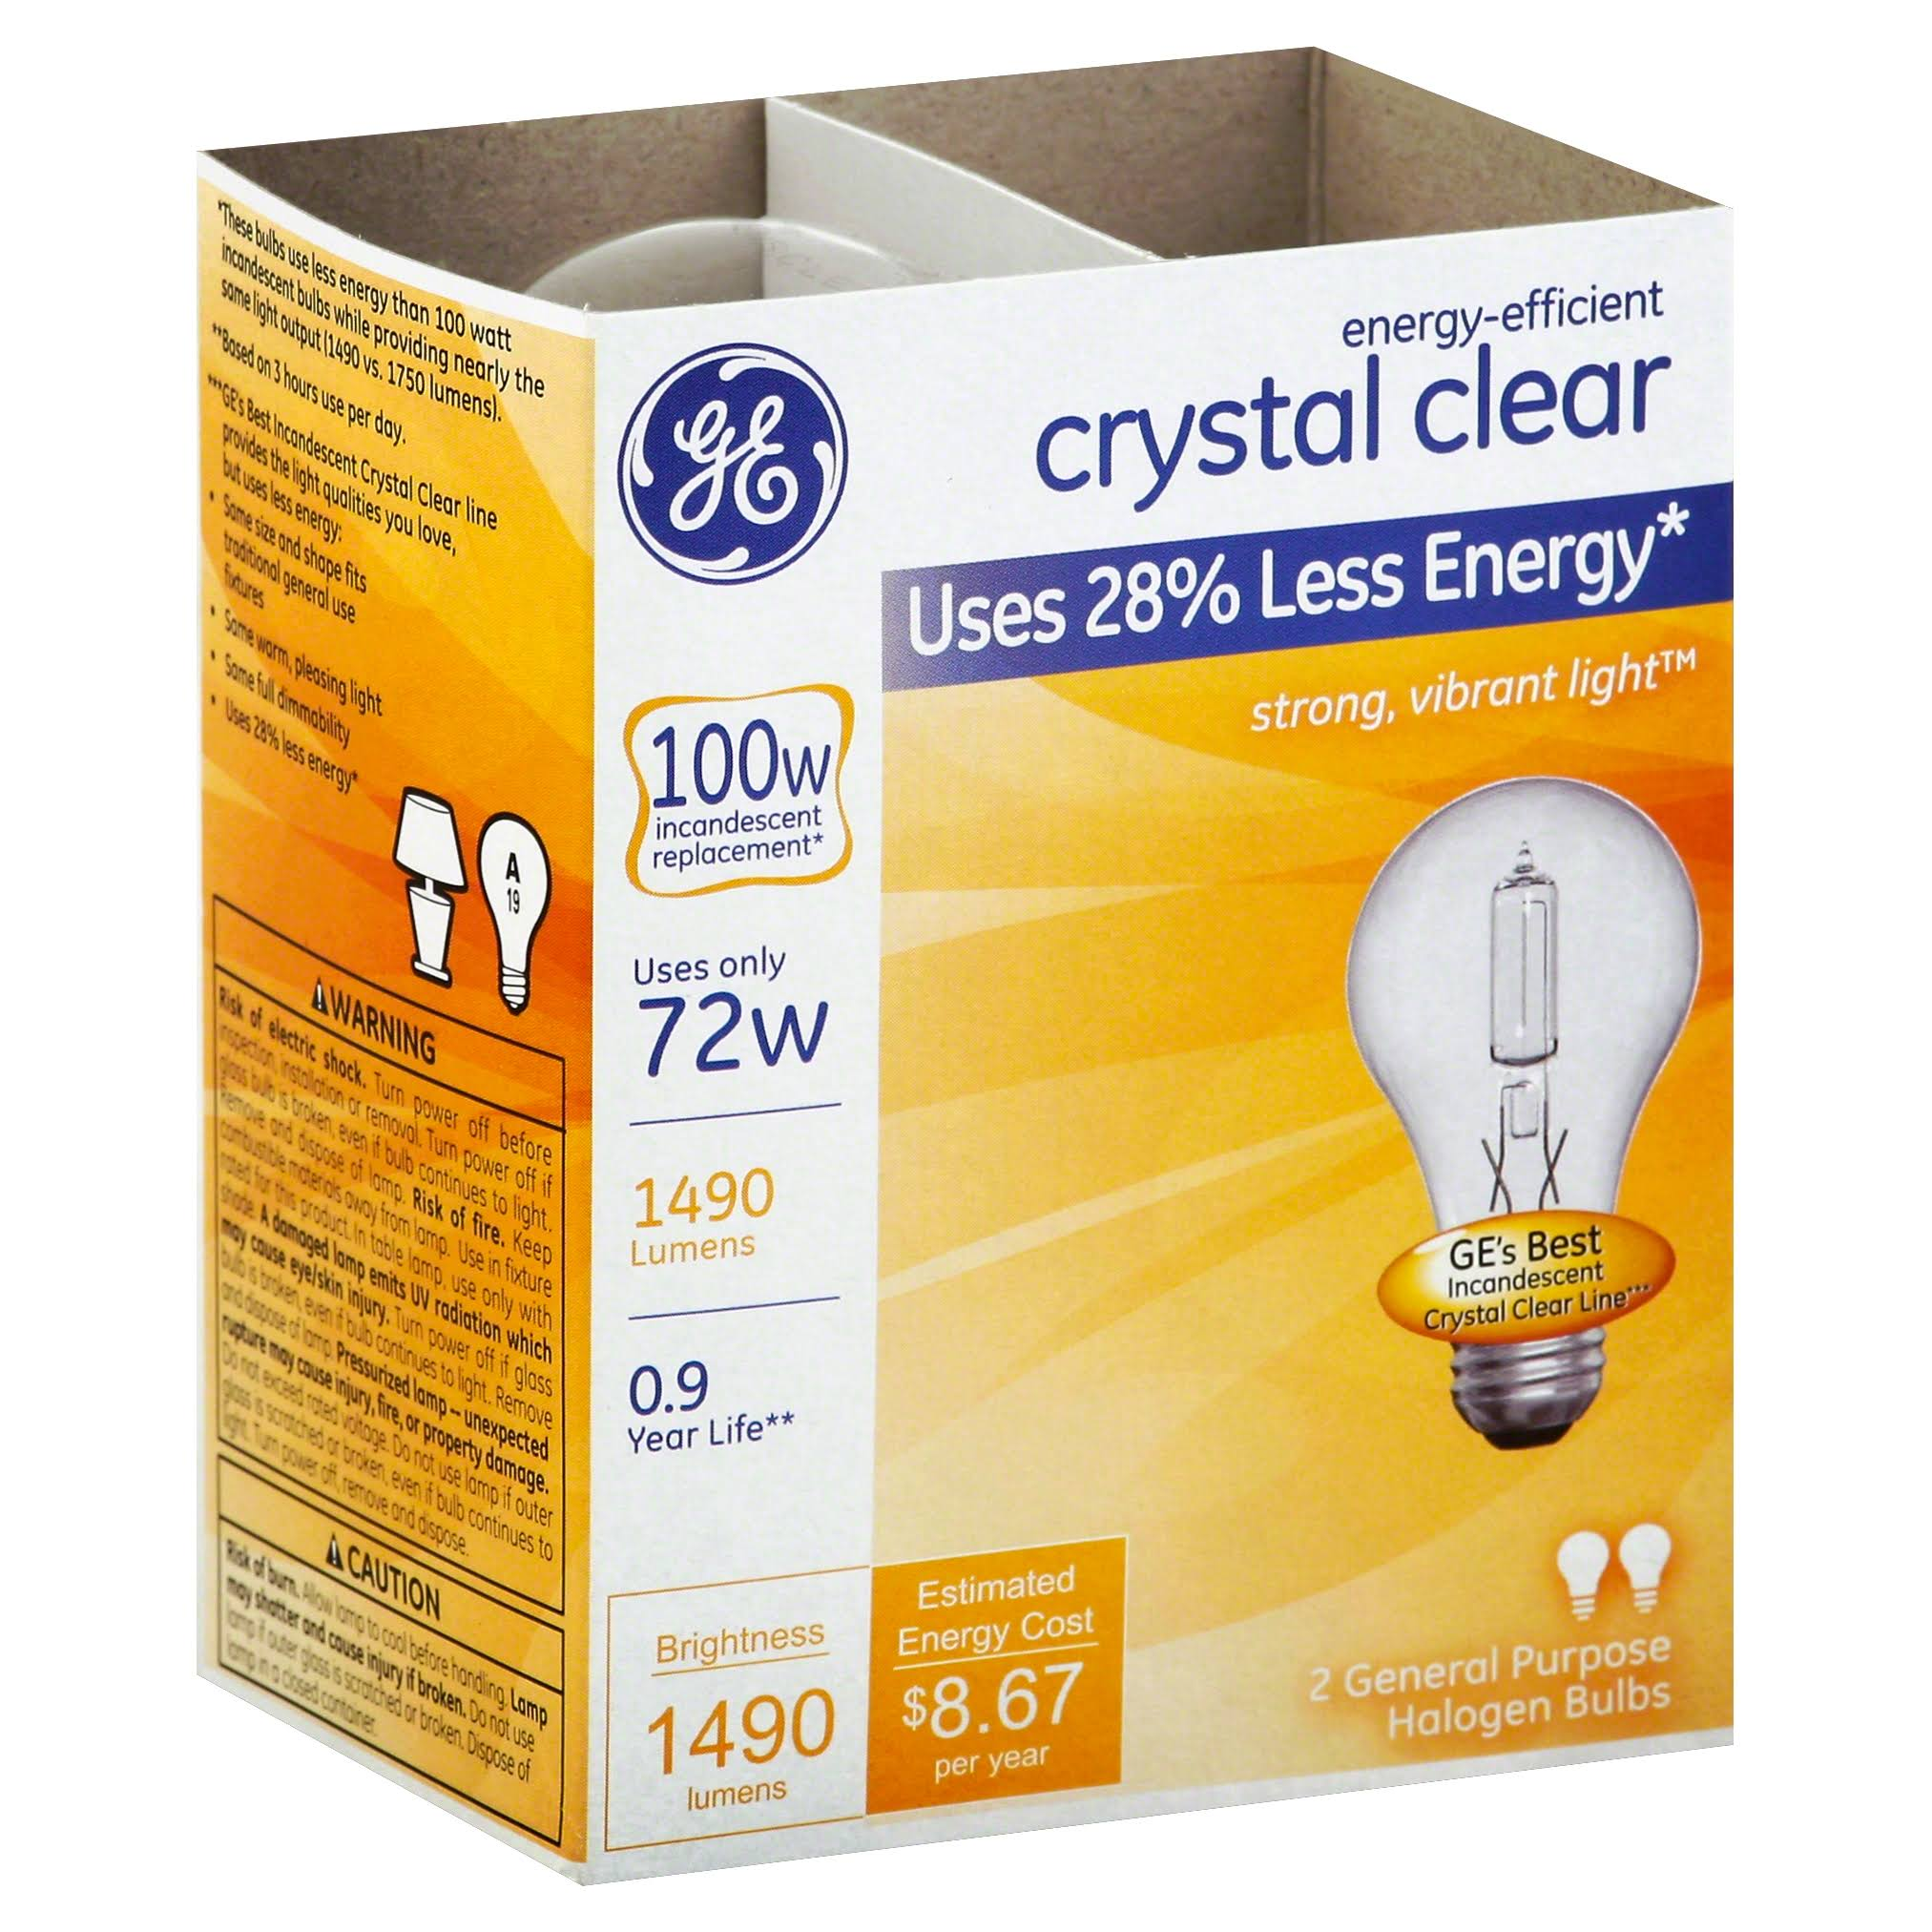 GE Energy Efficient Crystal Clear 72 Watt General Purpose Halogen Bulb